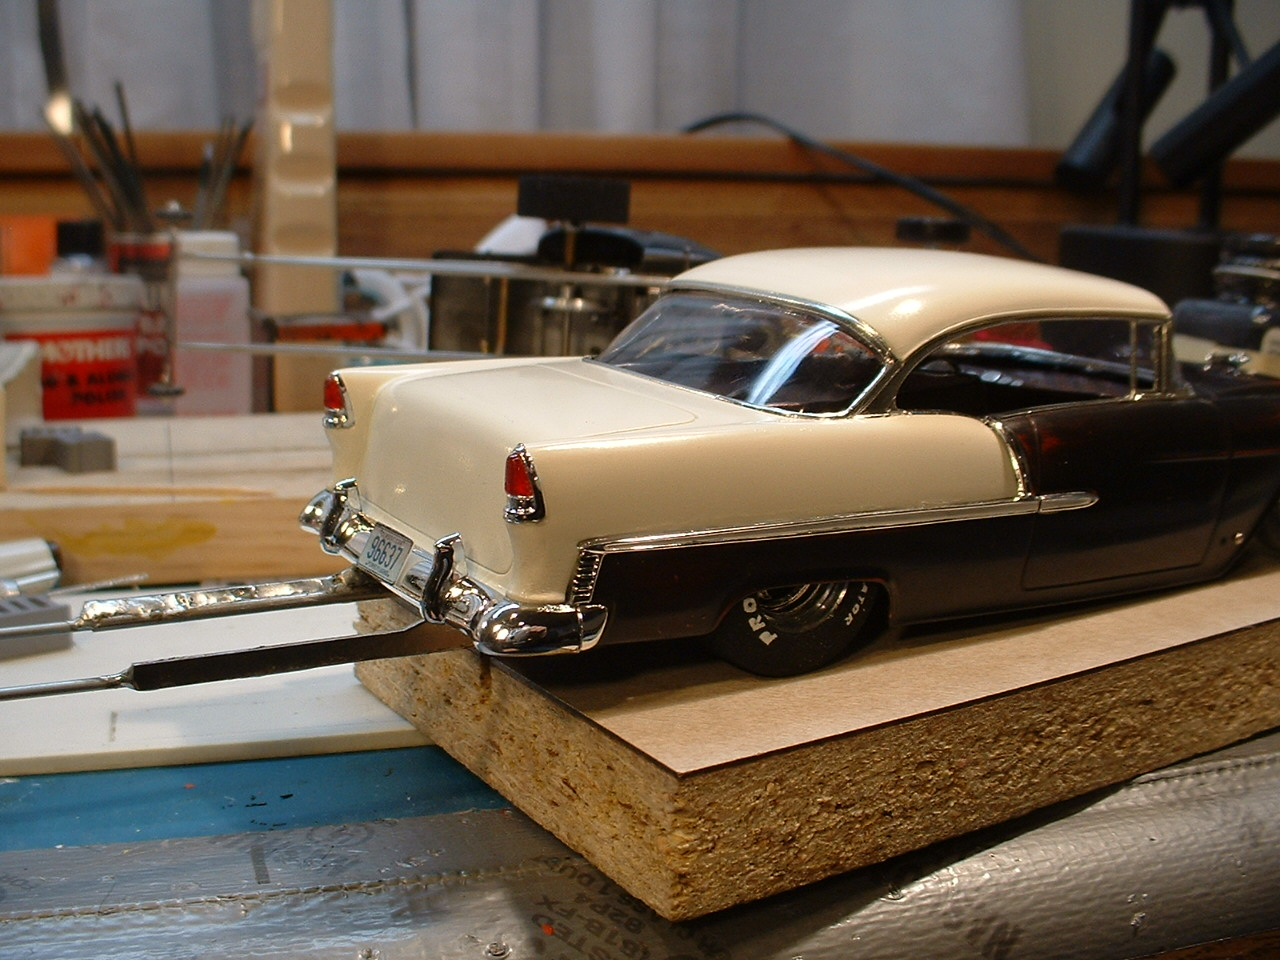 55 Chevy Drag Race Car http://www.modelcarsmag.com/forums/index.php?showtopic=8657